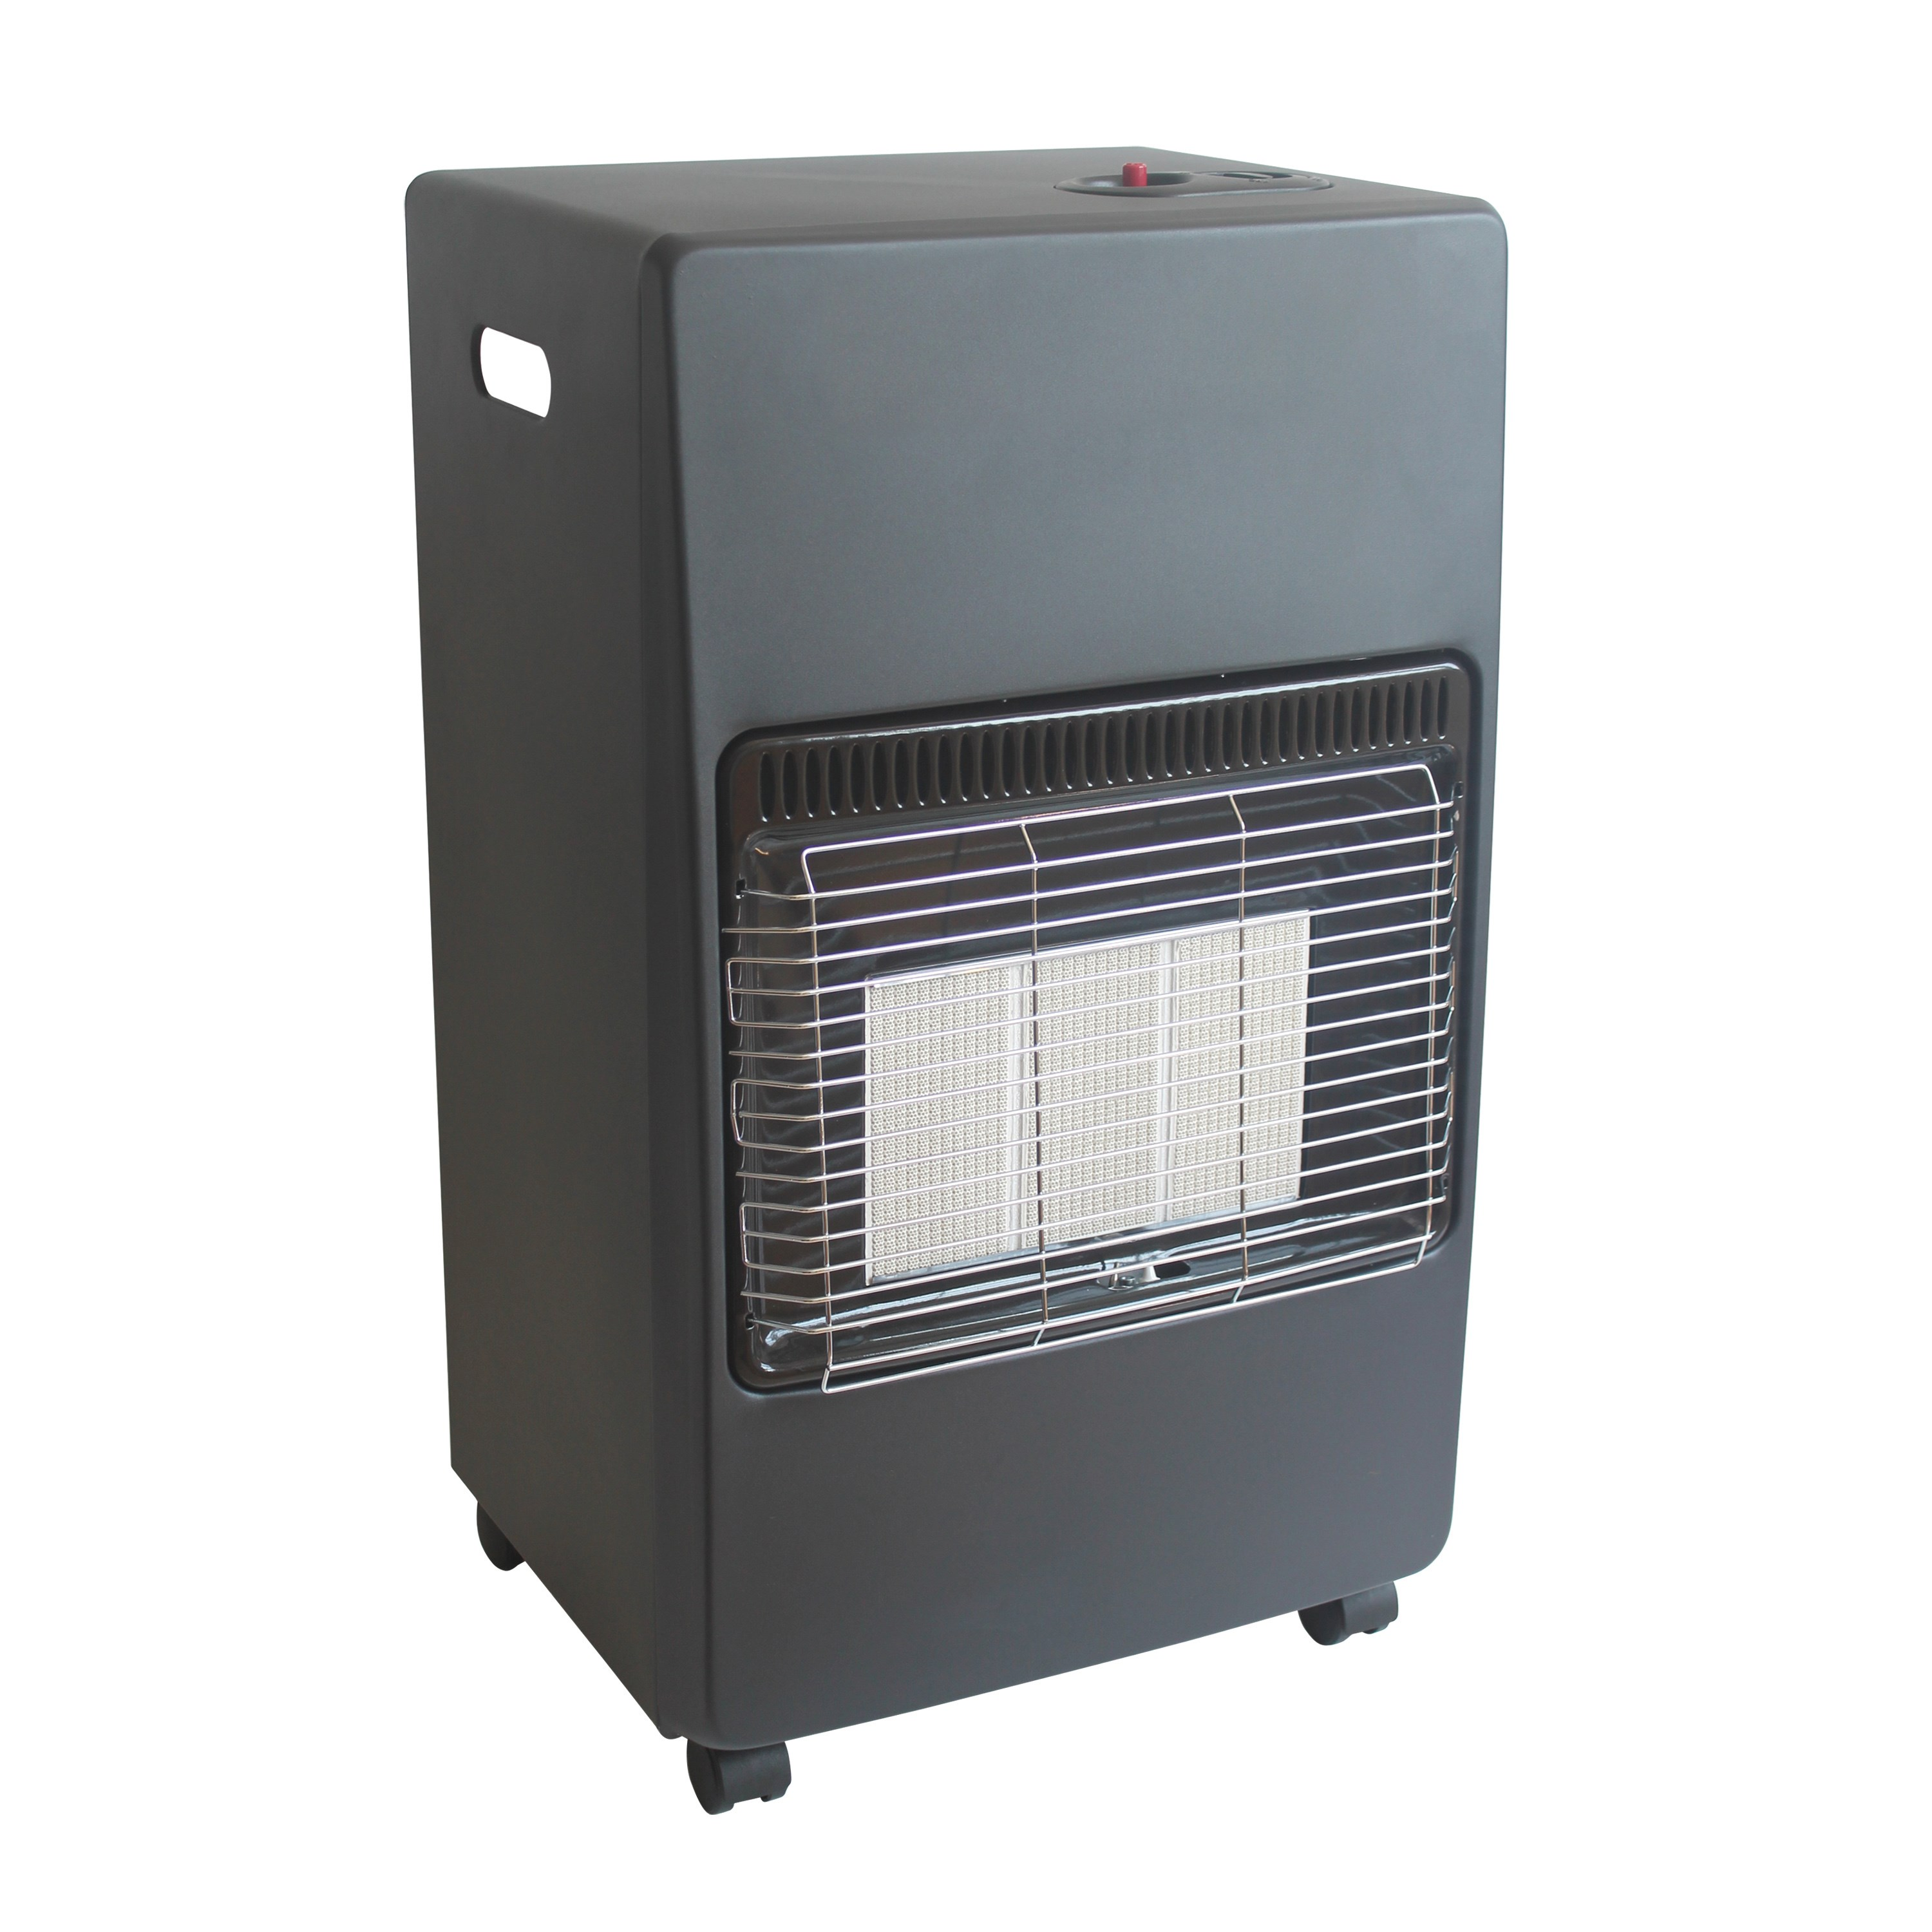 Radiant Bathroom Heaters: Sirocco Radiant Gas Heater